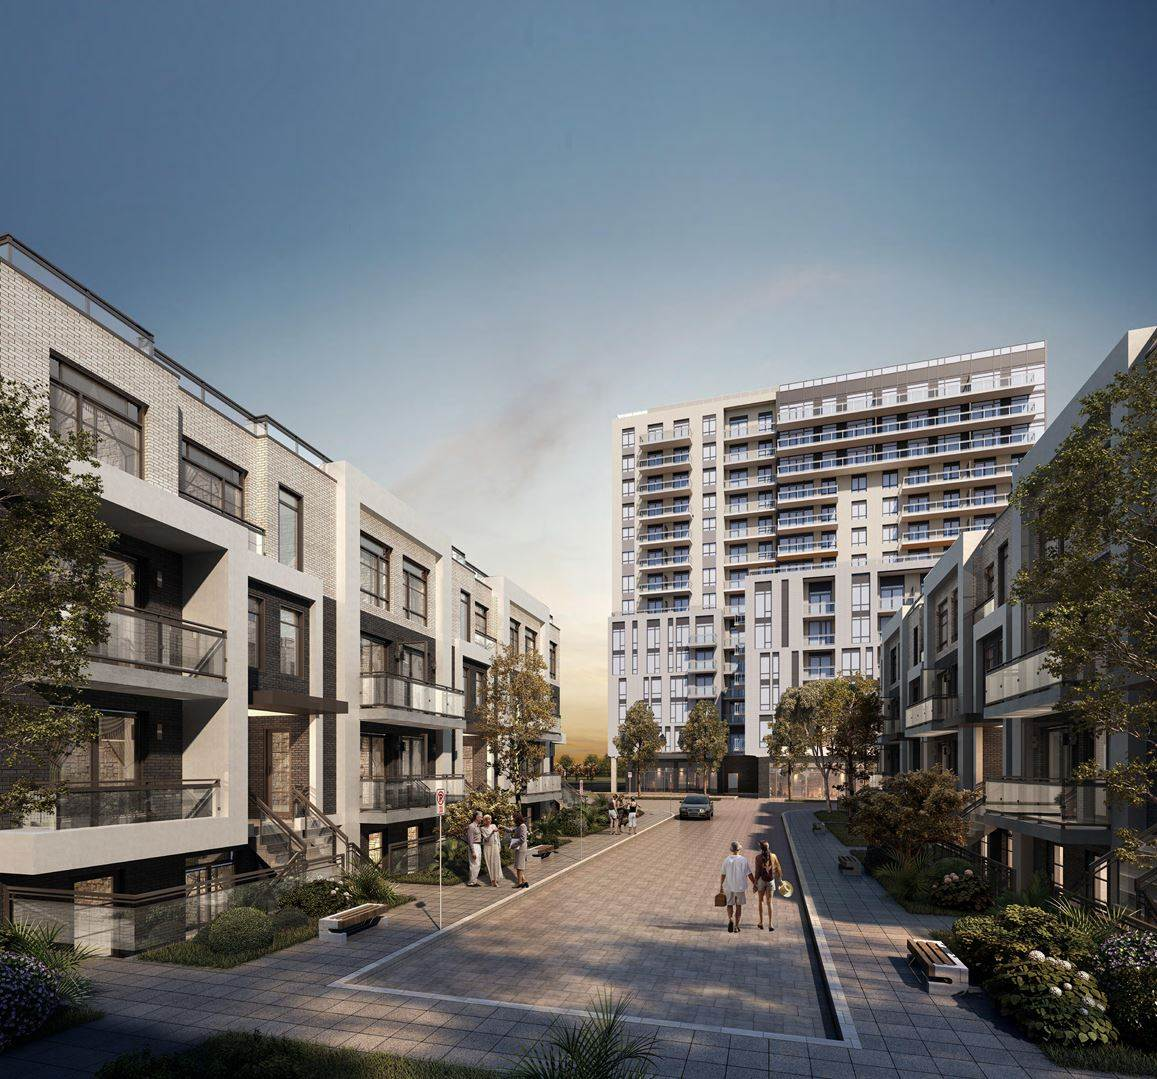 2021_01_06_01_42_23_sheppardgarden_95development_rendering_courtyard2